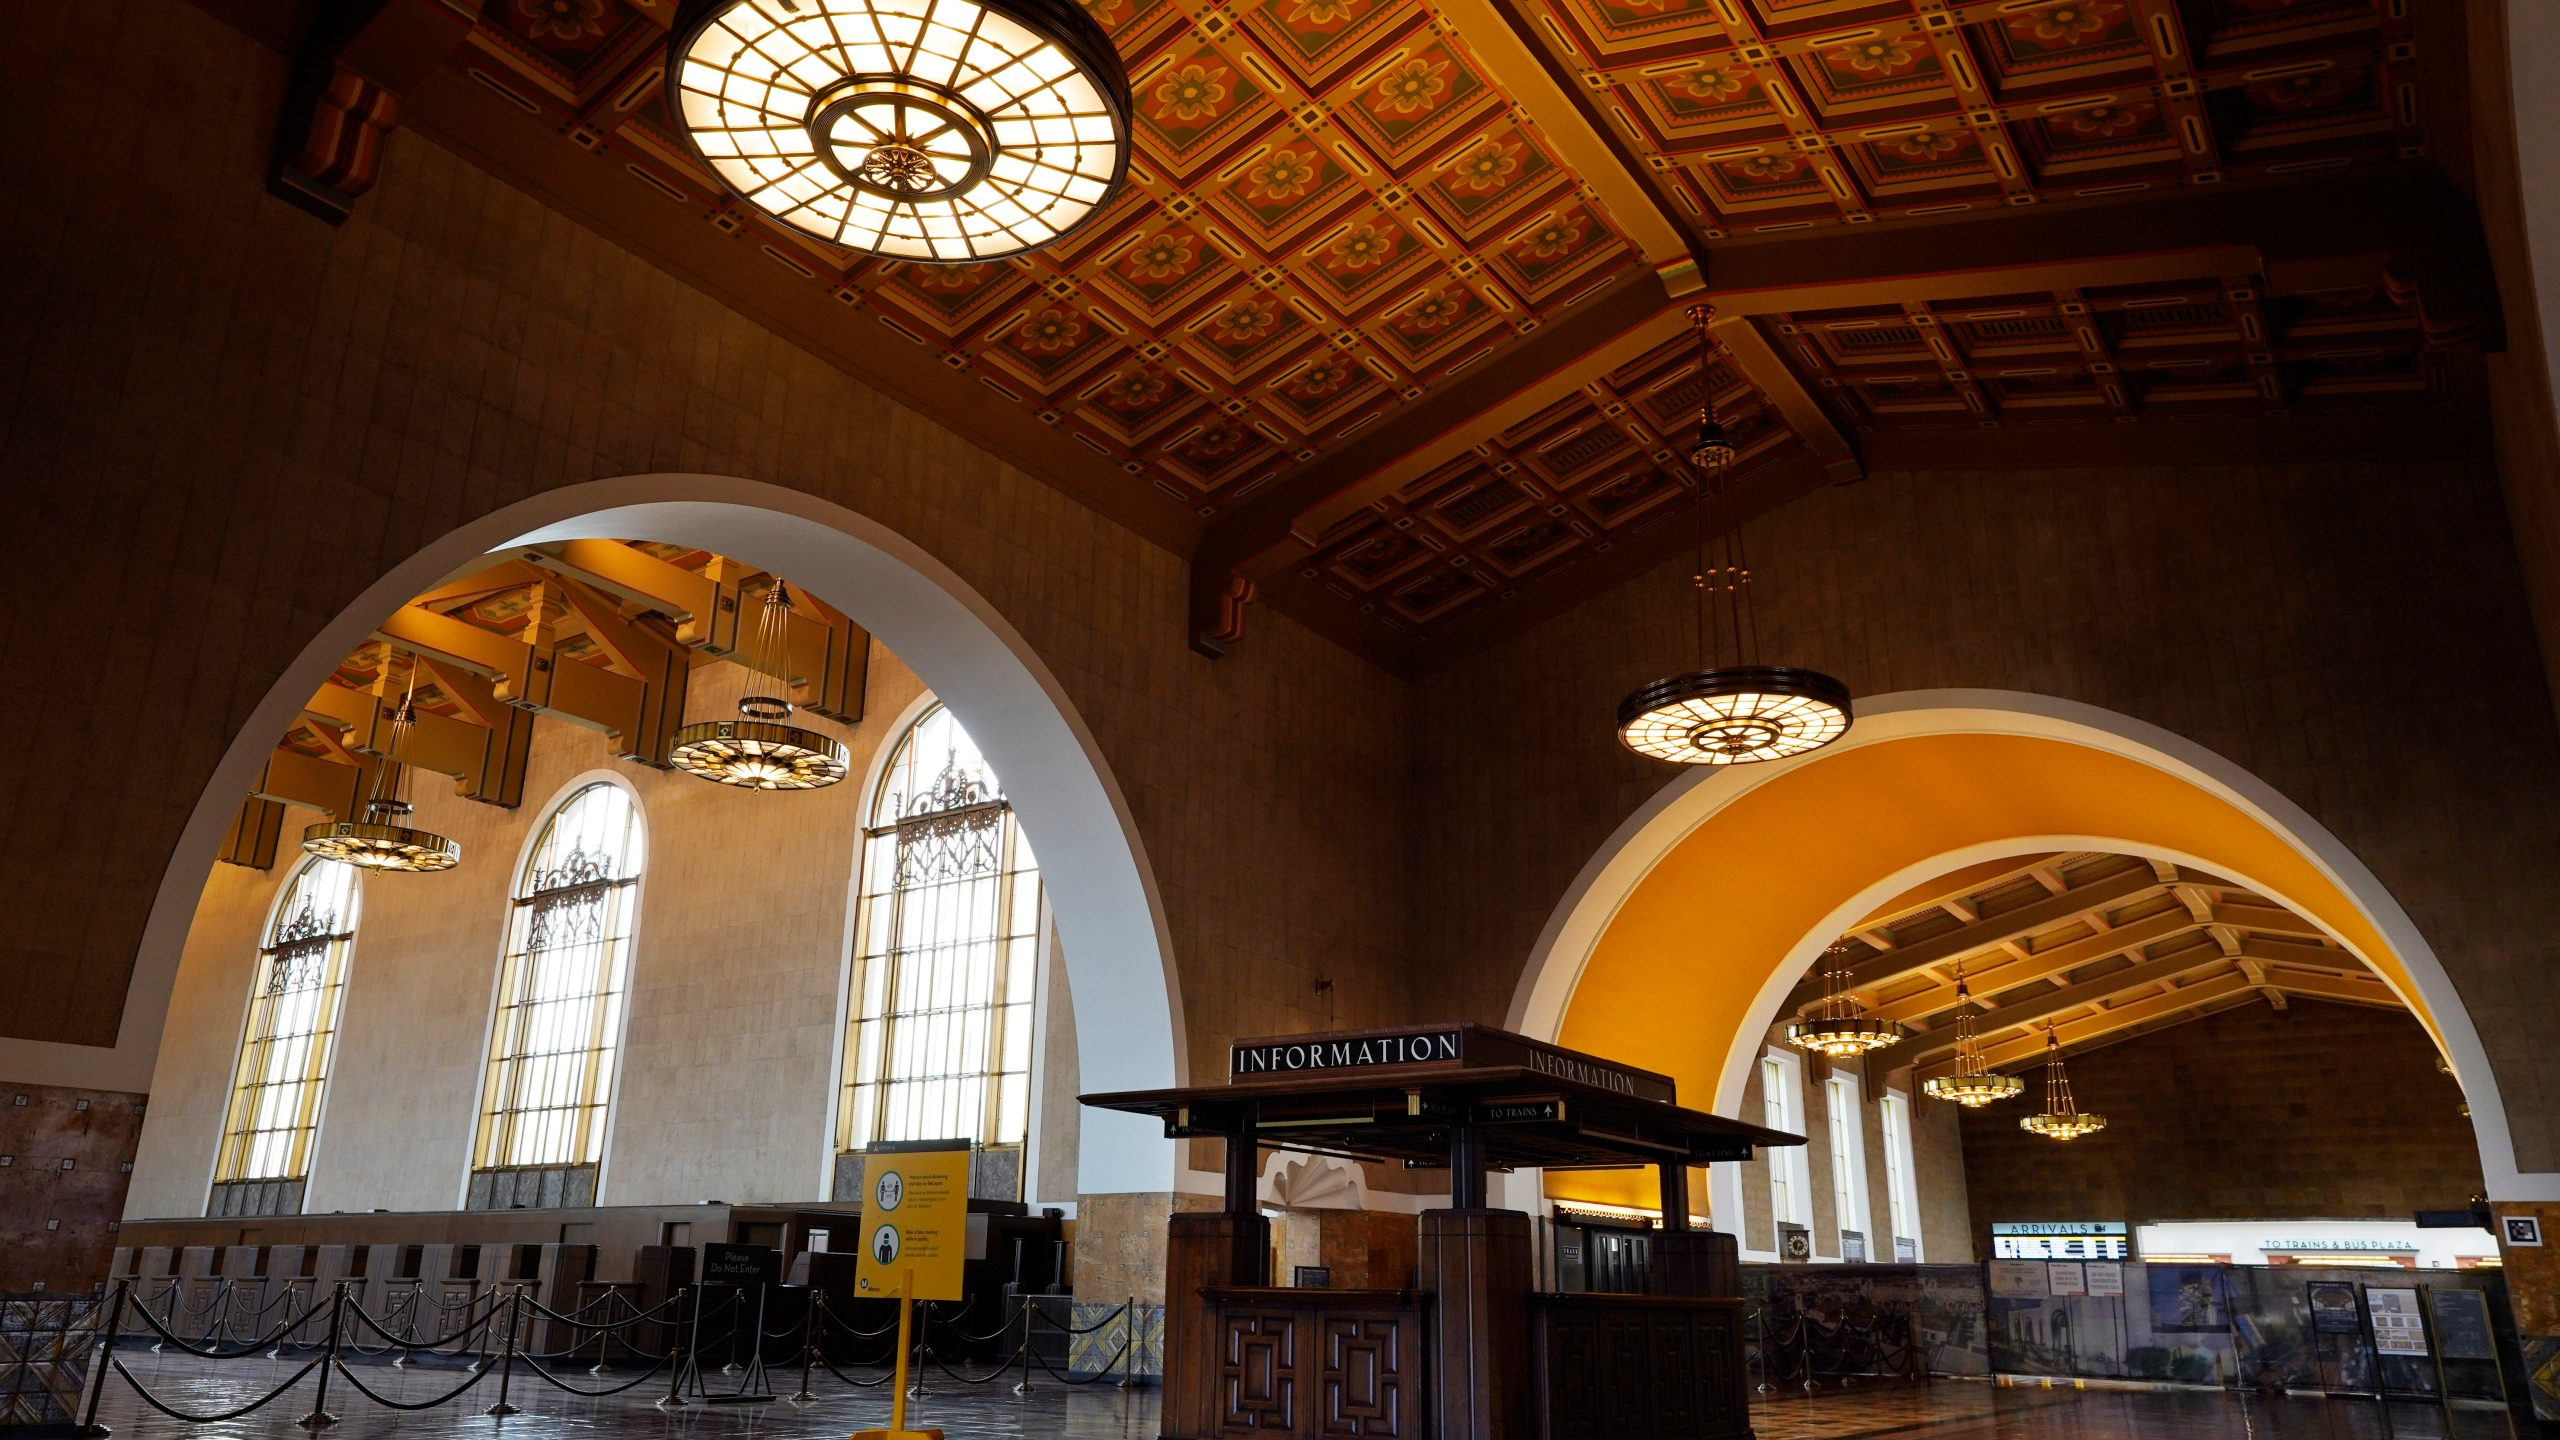 The interior of Union Station in Los Angeles appears on March 23, 2021. (AP Photo/Chris Pizzello)